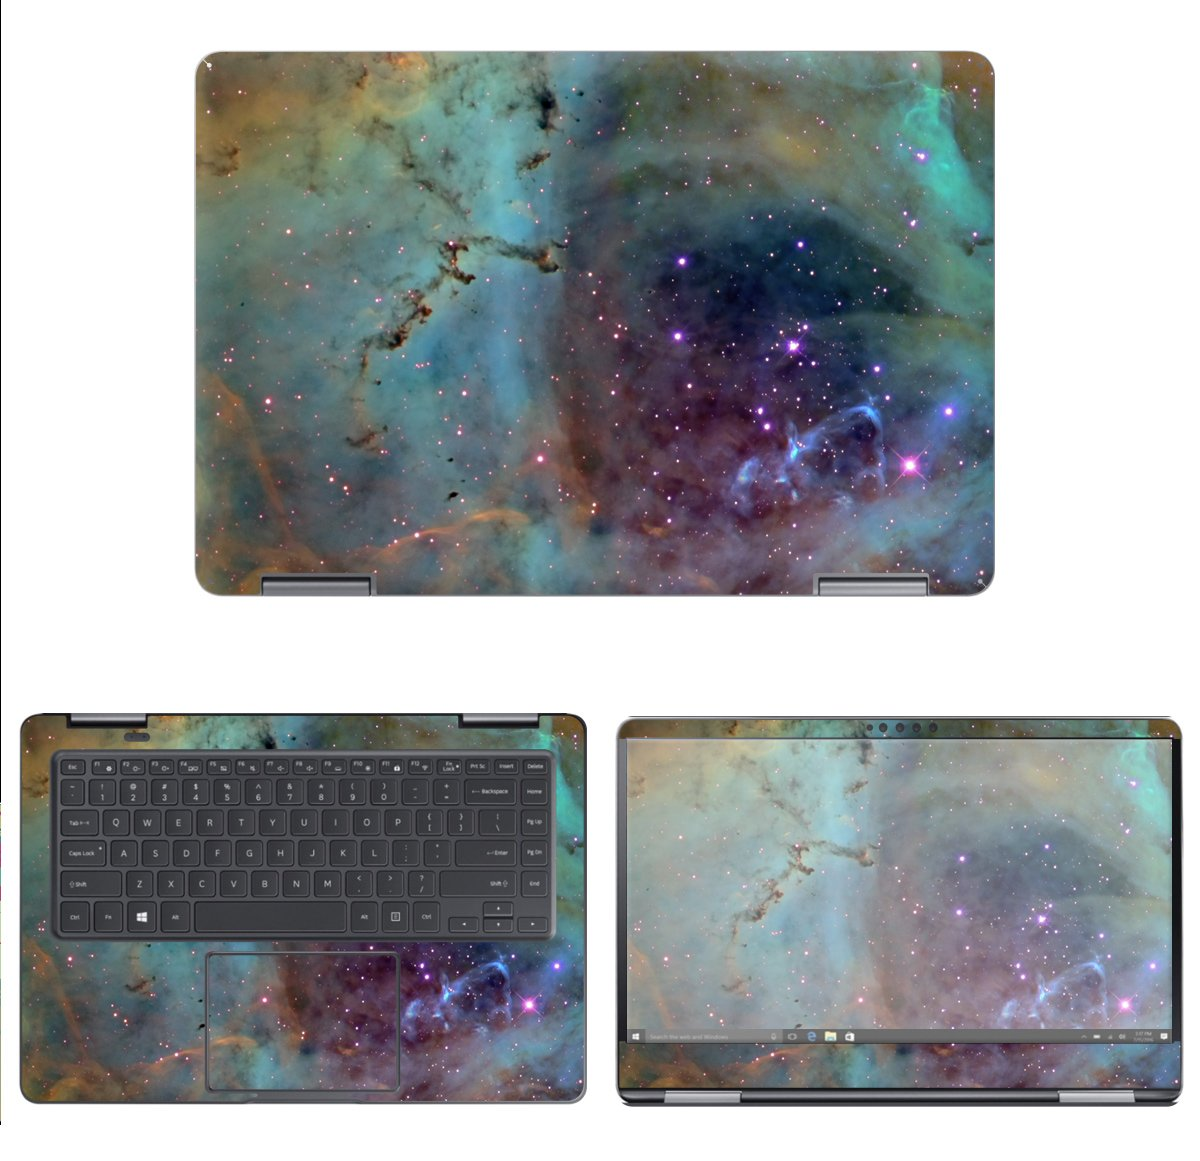 decalrus - Protective Decal Galaxy Skin Sticker for Samsung Notebook 9 Pro 15 NP940X5M (15.6'' Screen) case Cover wrap SAntbk9pro15_np940x5m-74